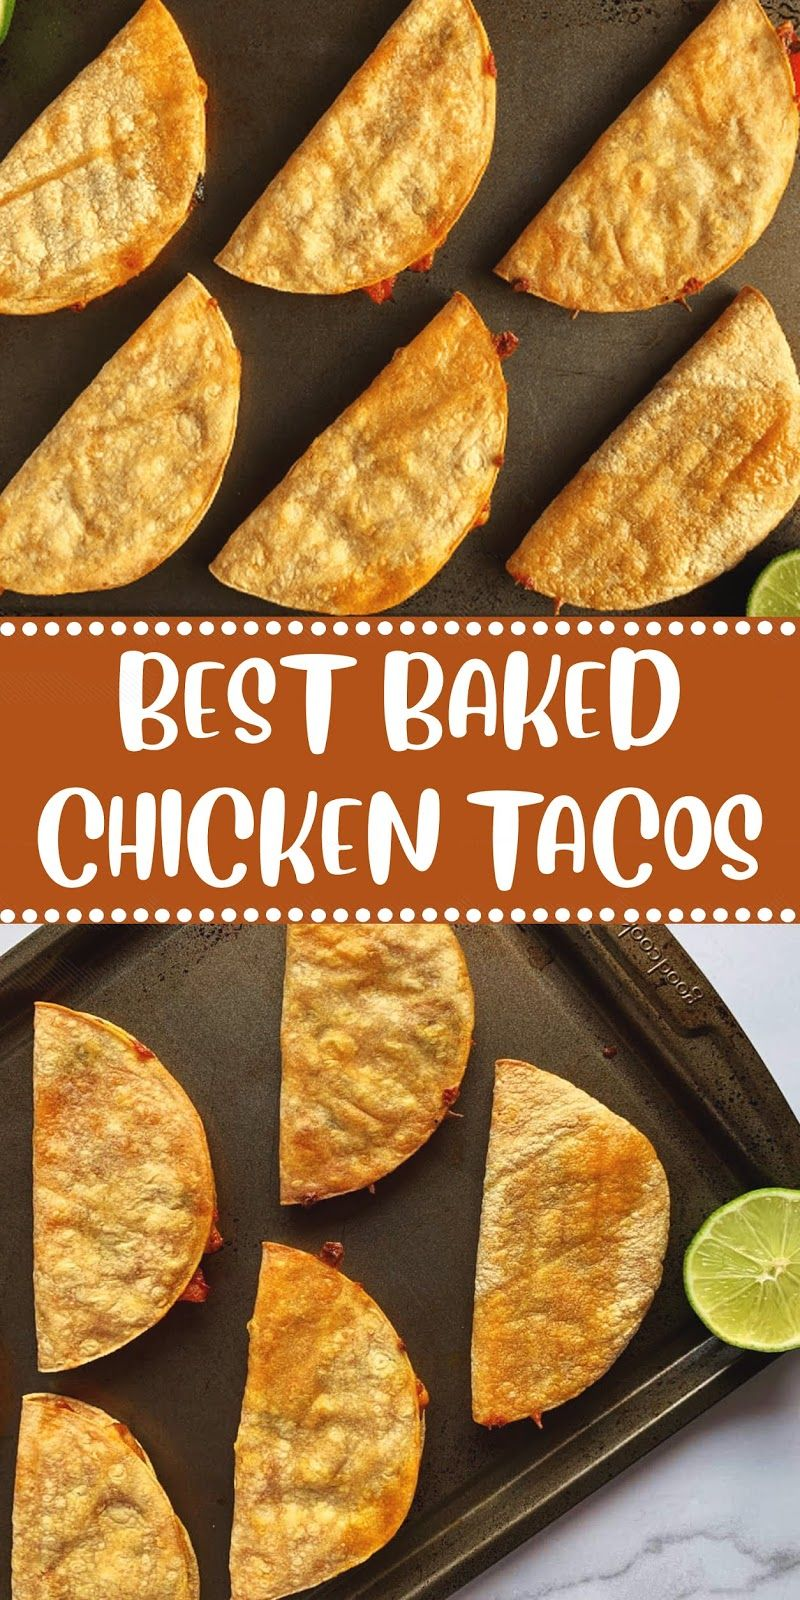 BEST BAKED CHICKEN TACOS